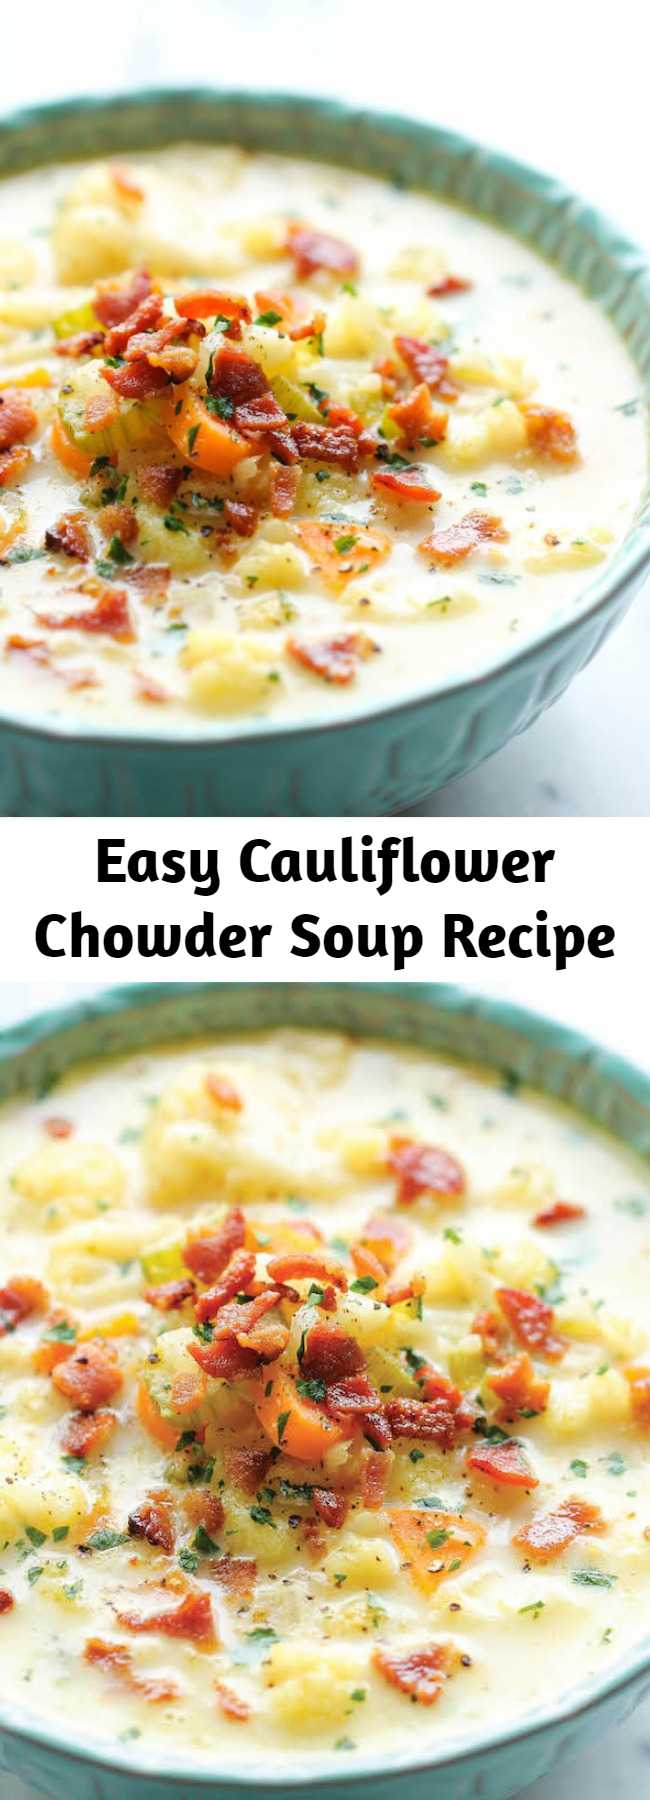 Easy Cauliflower Chowder Soup Recipe - A creamy, low carb, hearty and wonderfully cozy soup for those chilly nights!